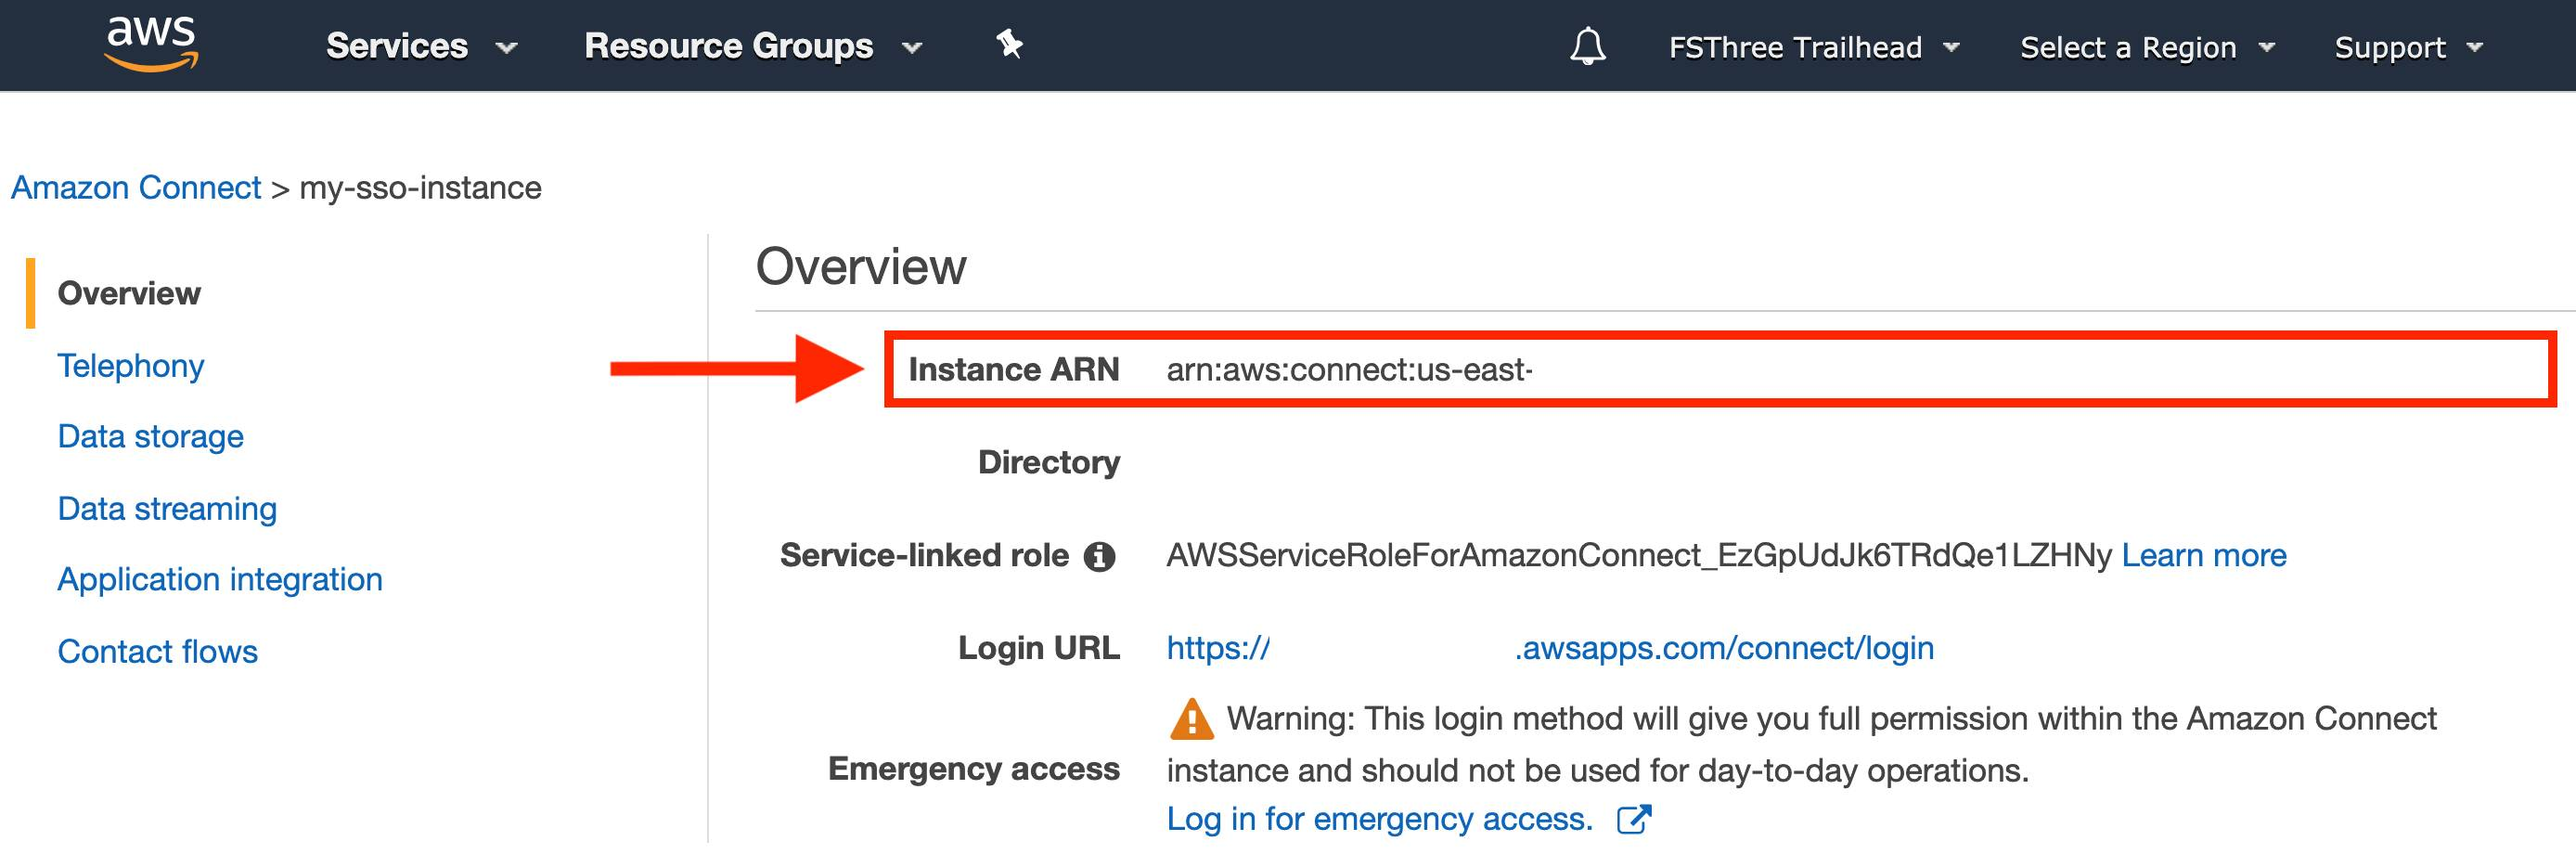 Amazon Connect instance overview with Instance ARN highlighted by a red box